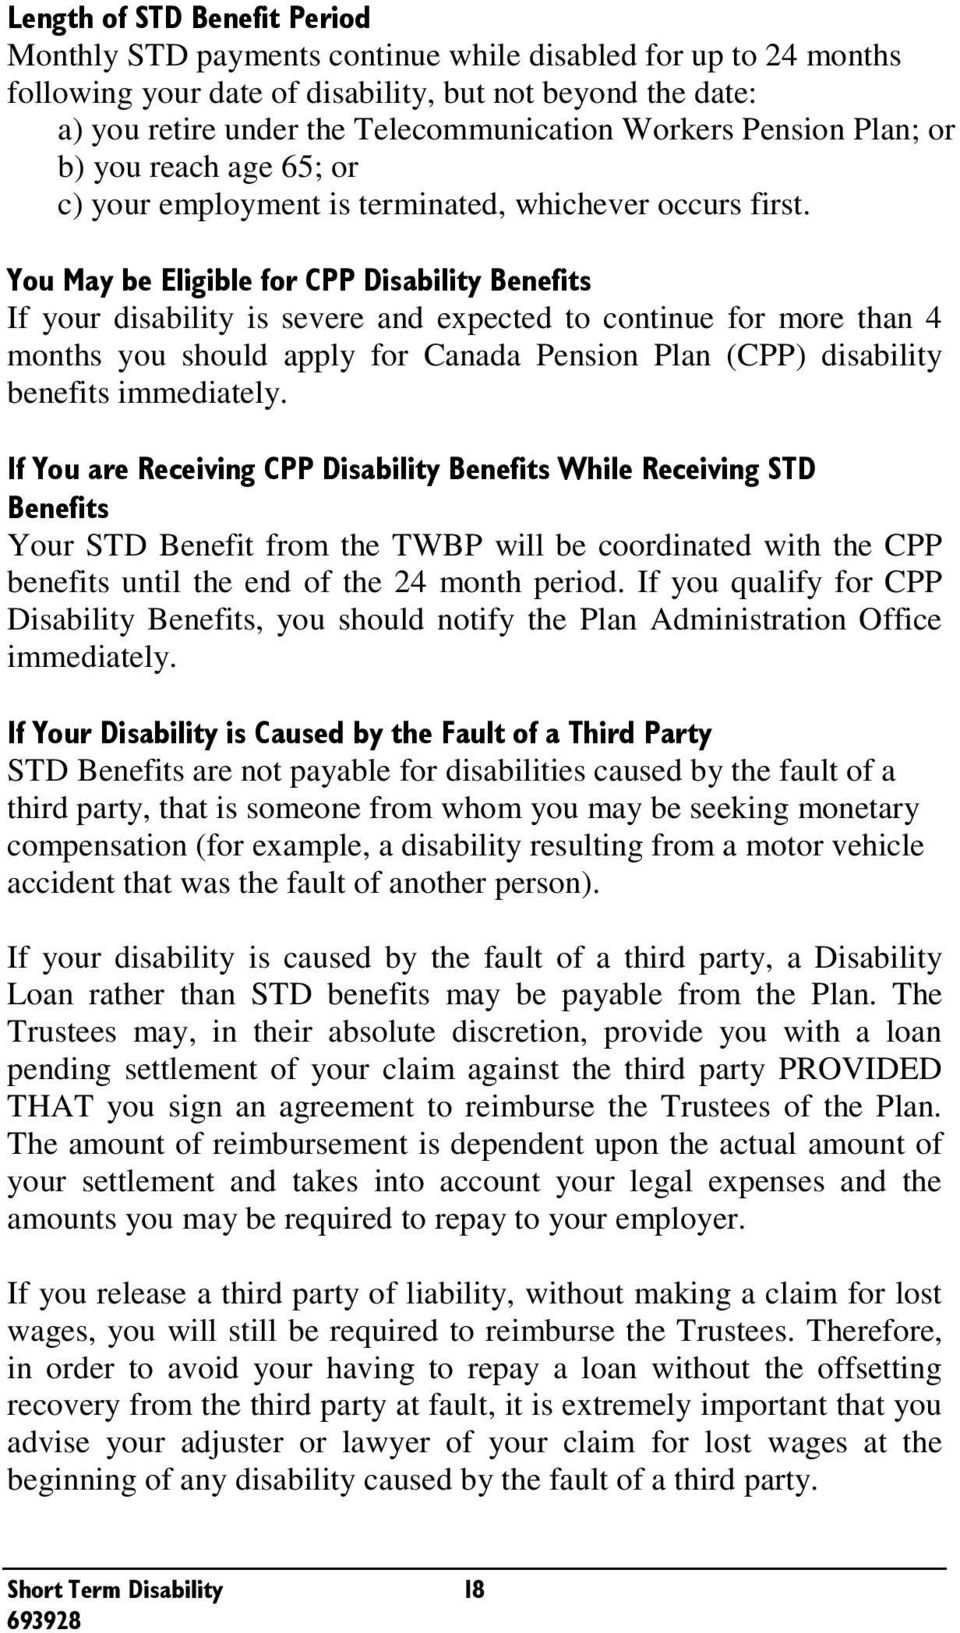 E $0/5$ If your disability is severe and expected to continue for more than 4 months you should apply for Canada Pension Plan (CPP) disability benefits immediately. (E./5$ 4.